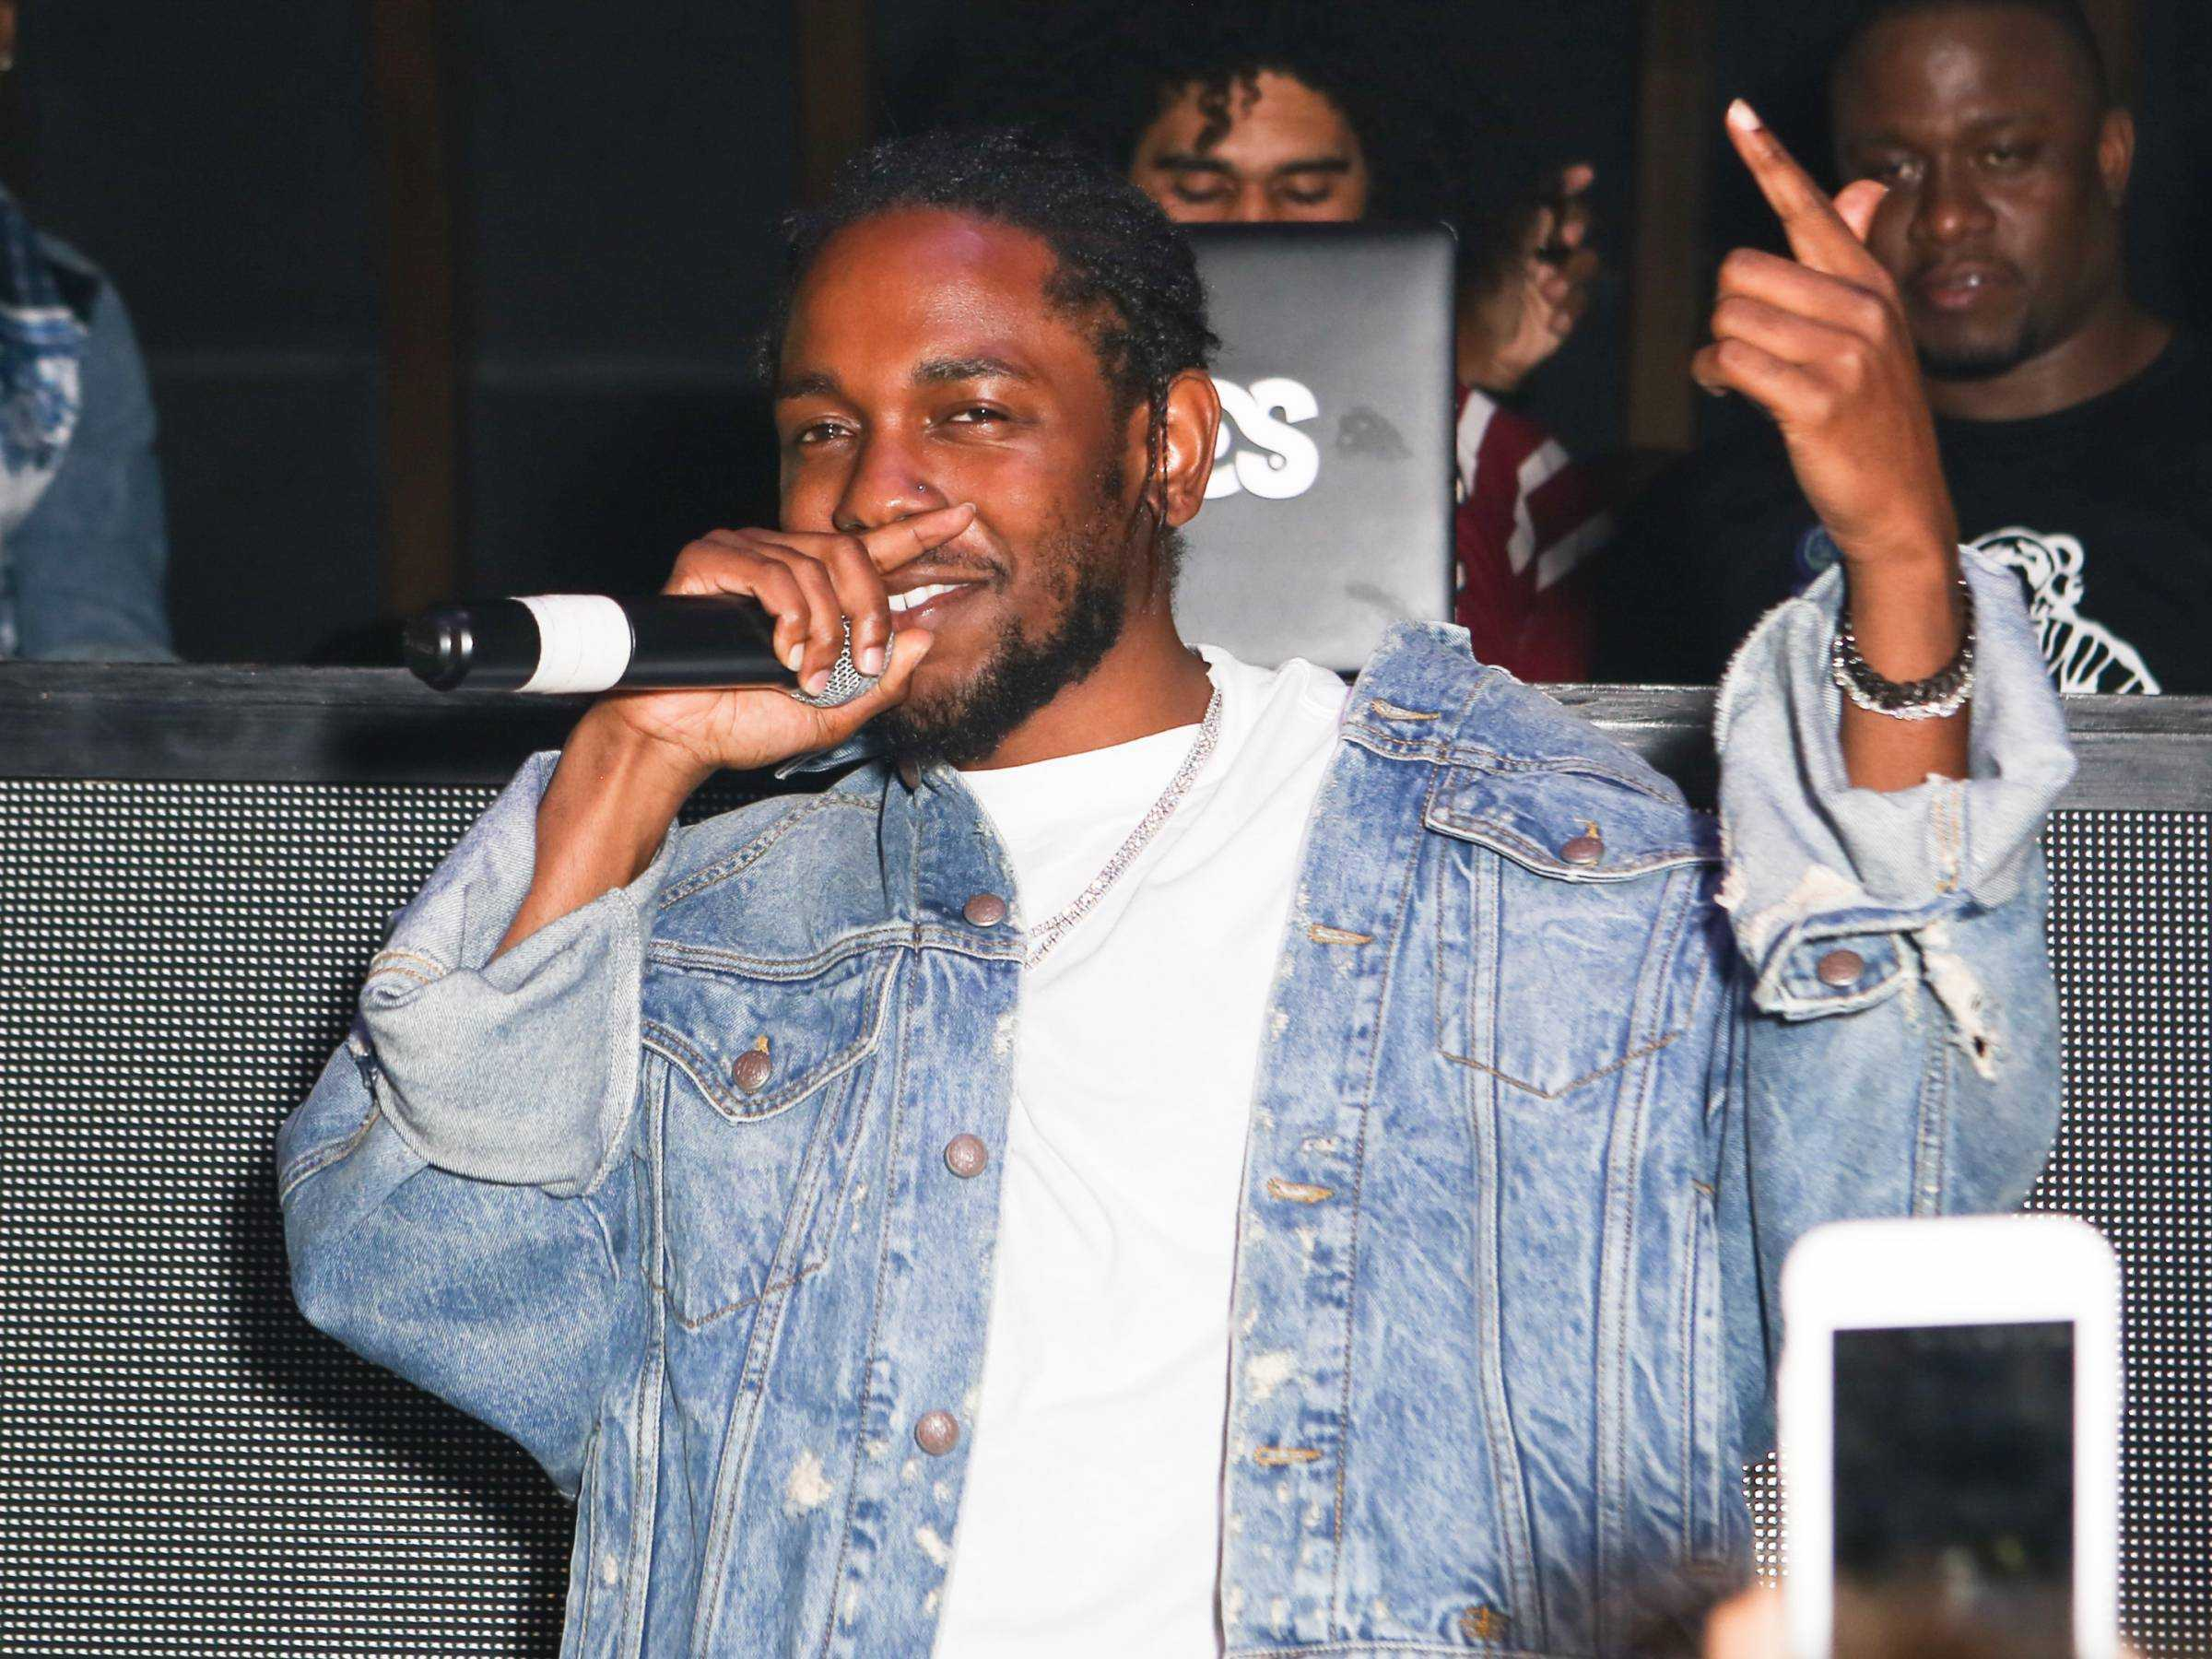 Kendrick Lamar & Lana Del Rey Celebrate Their Birthday at 1OAK [Photos]